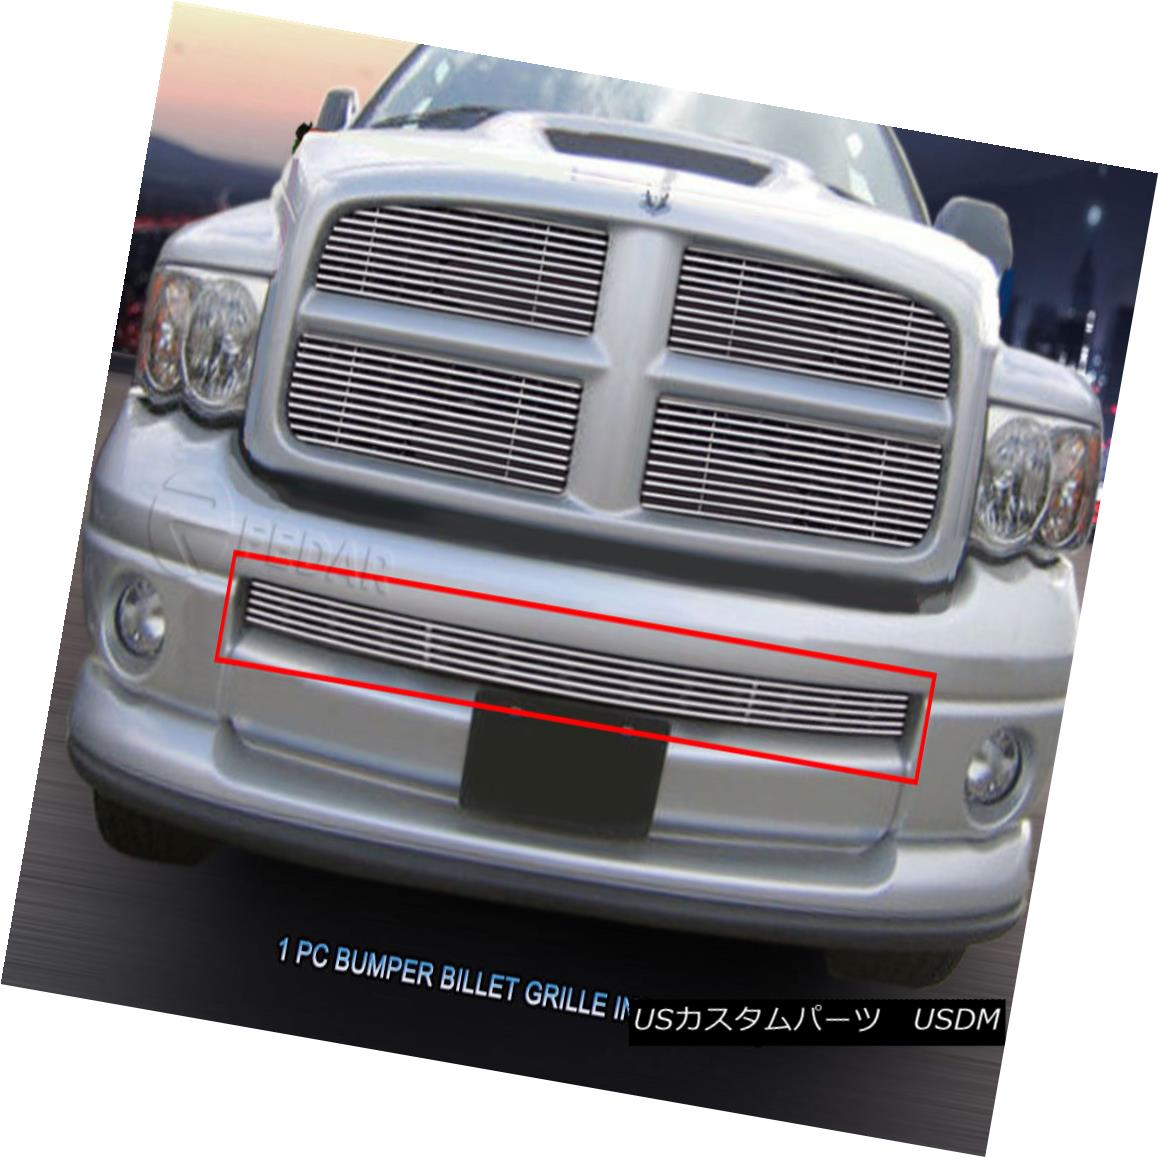 グリル 2002 - 2005 Dodge Ram Sport Polished Billet Grille Lower Bumper Inserts Fedar 2002 - 2005 Dodge Ram SportポリッシュドビレットグリルロワーバンパーインサートFedar